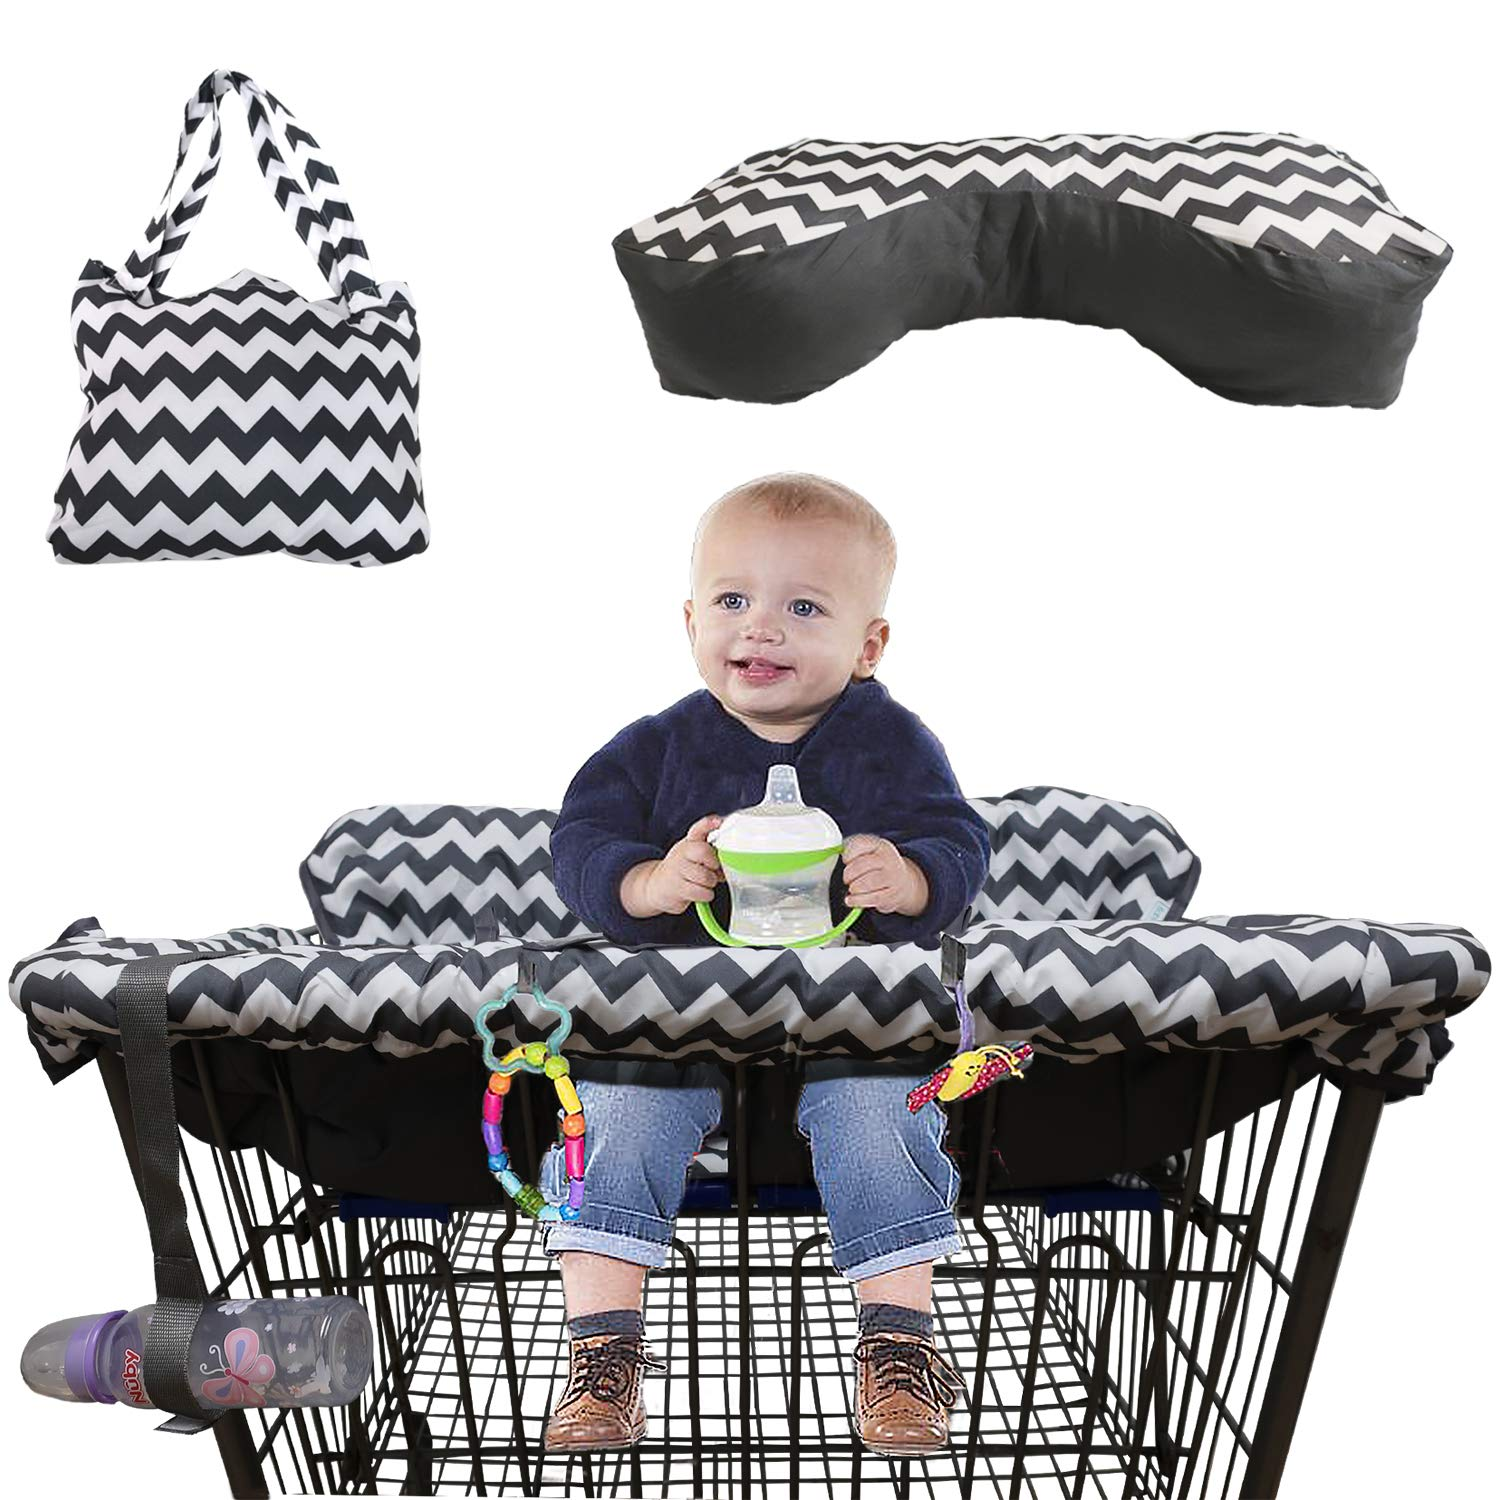 HEYJUDY Children Shopping Cart Cushion Includes Carry Bag Storage Bag for Children 6 Months to 3 Years Old